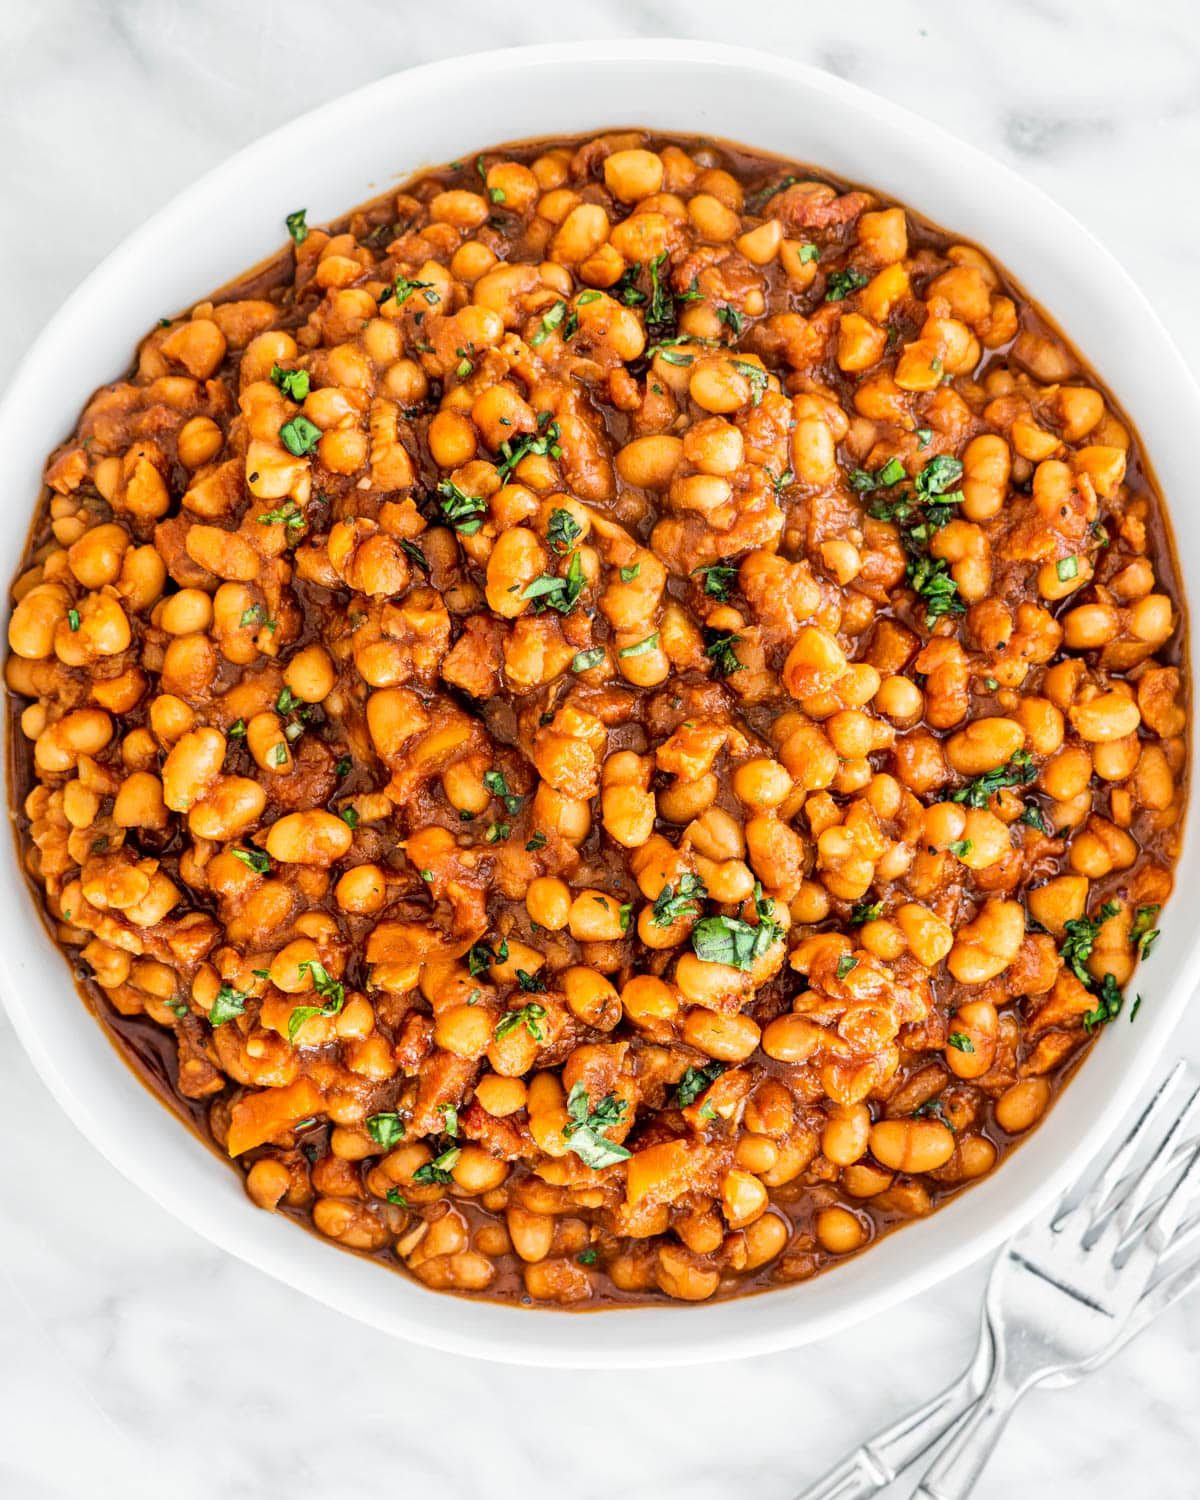 overhead shot of baked beans in a white bowl garnished with parsley